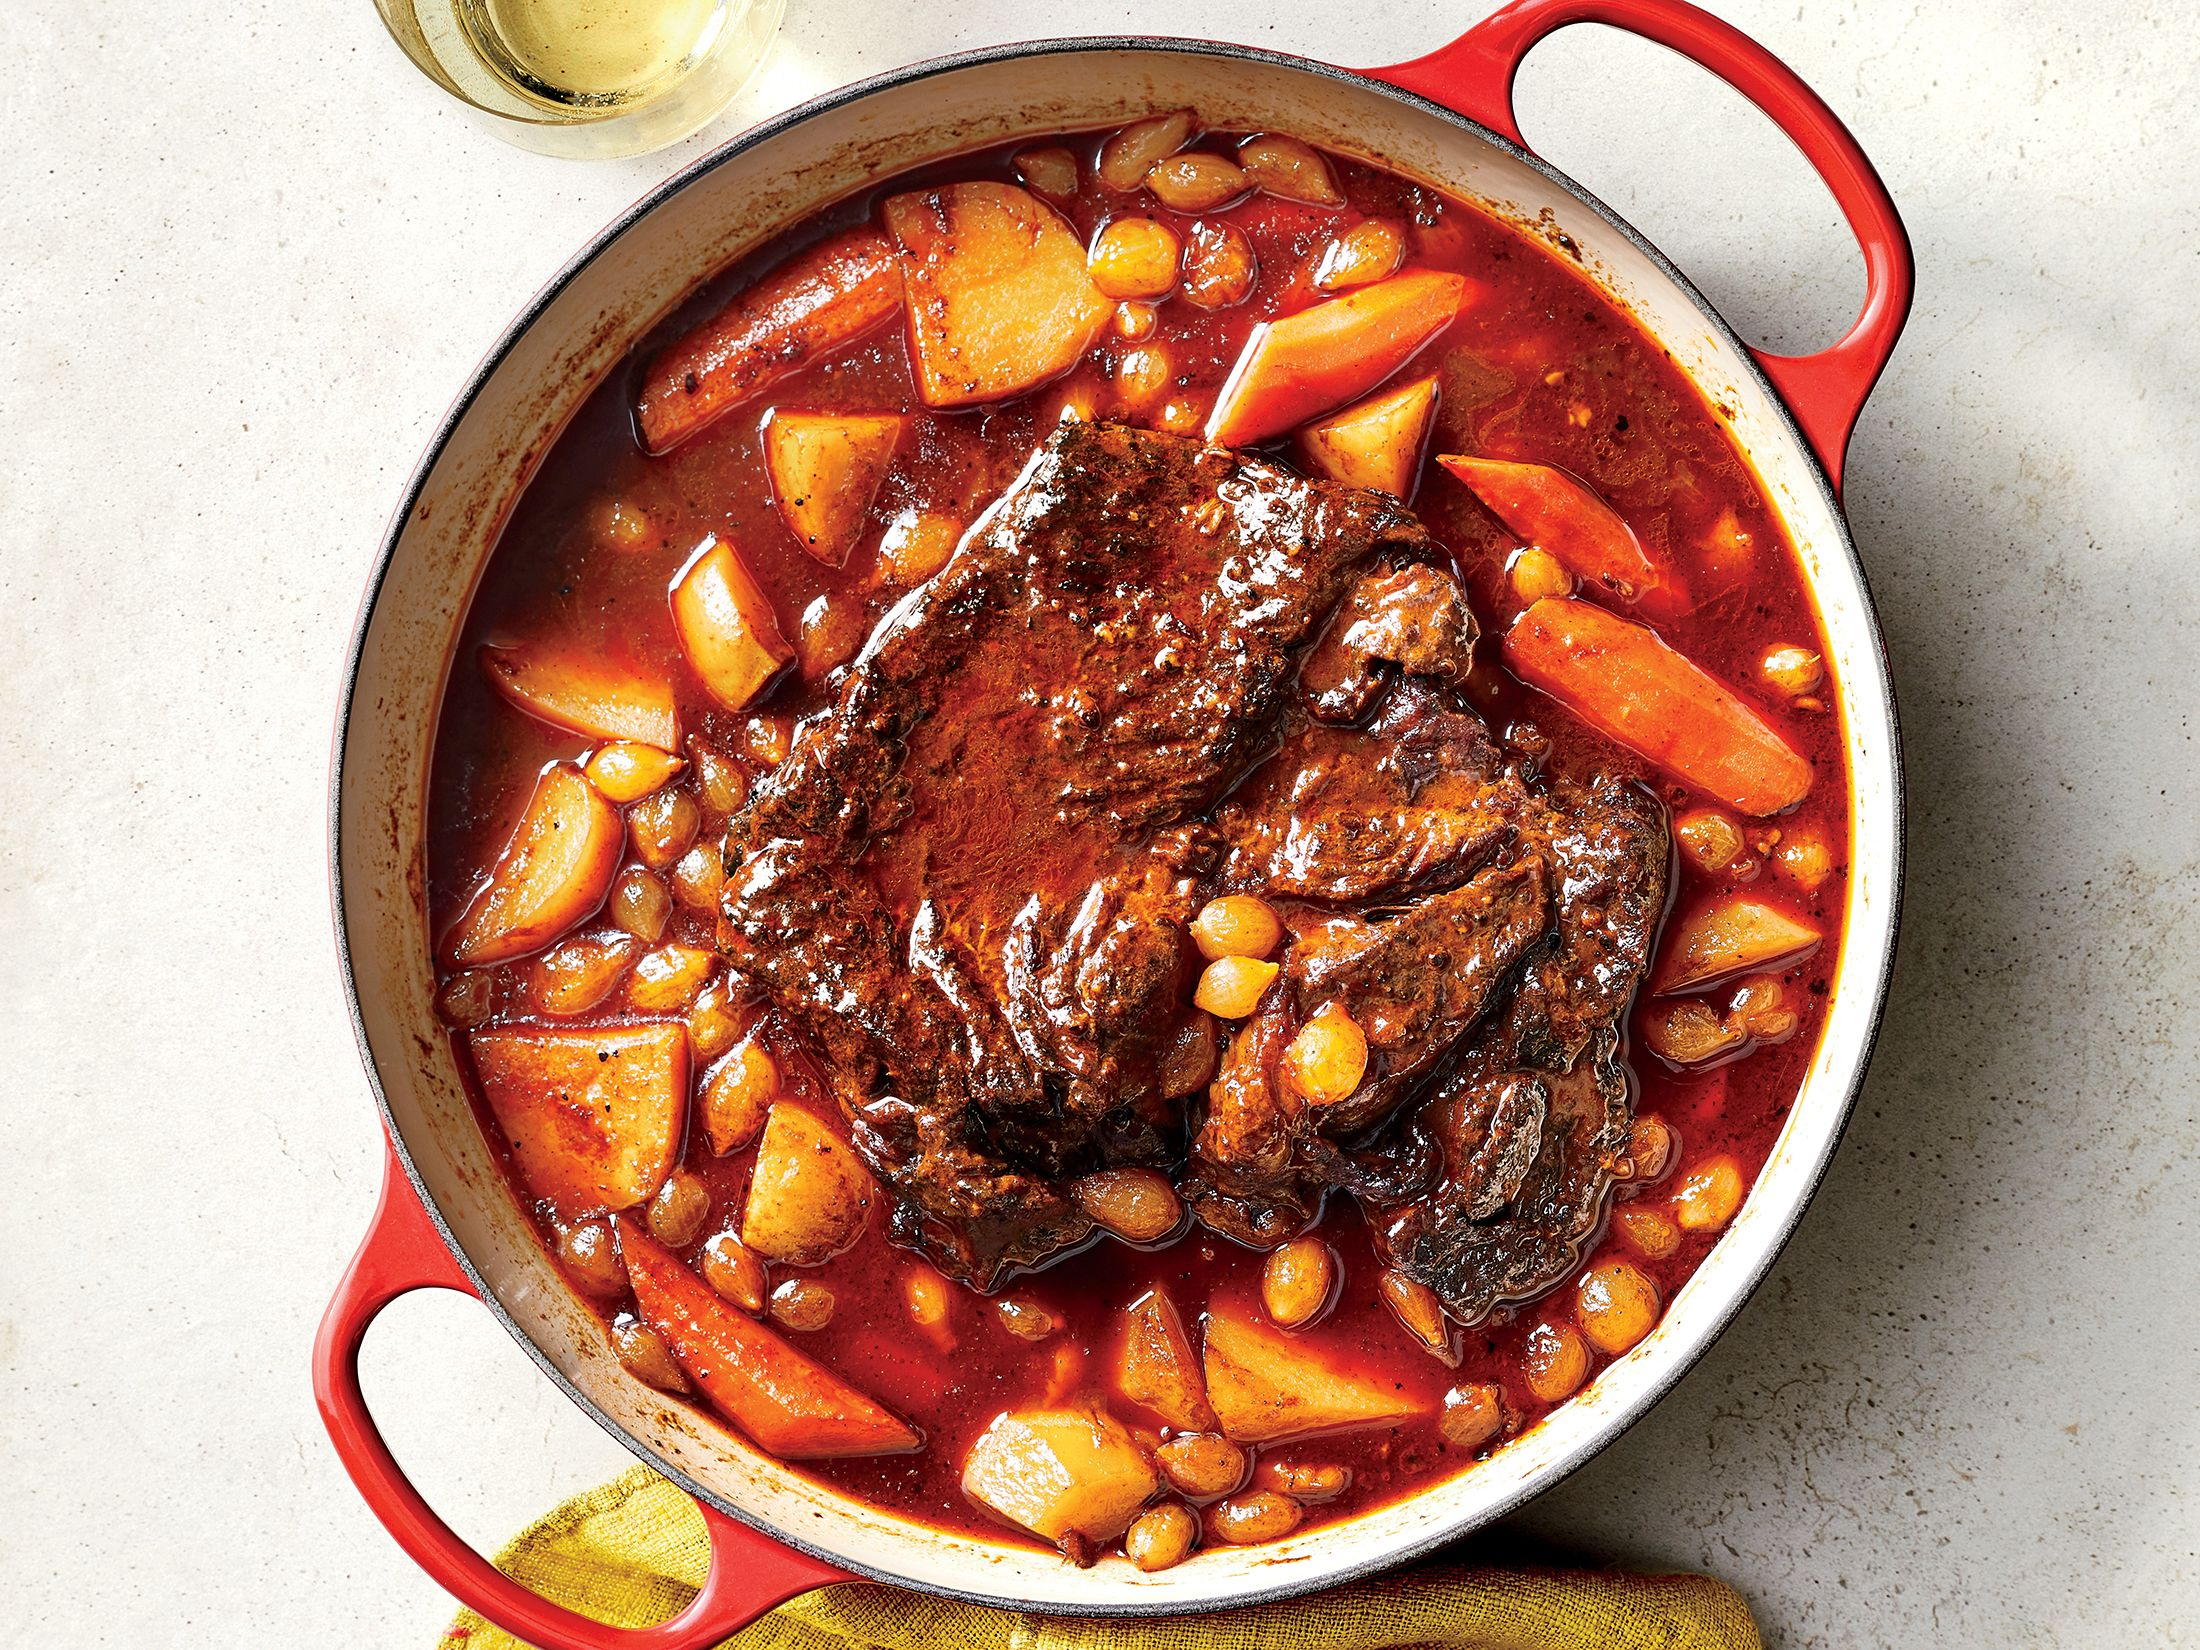 Big Batch Oven Braised Pot Roast Make This Meal On A Sunday And You Ll Have Three Dinners Taken Care Of Th Pot Roast Recipes Cooking Light Recipes Pot Roast